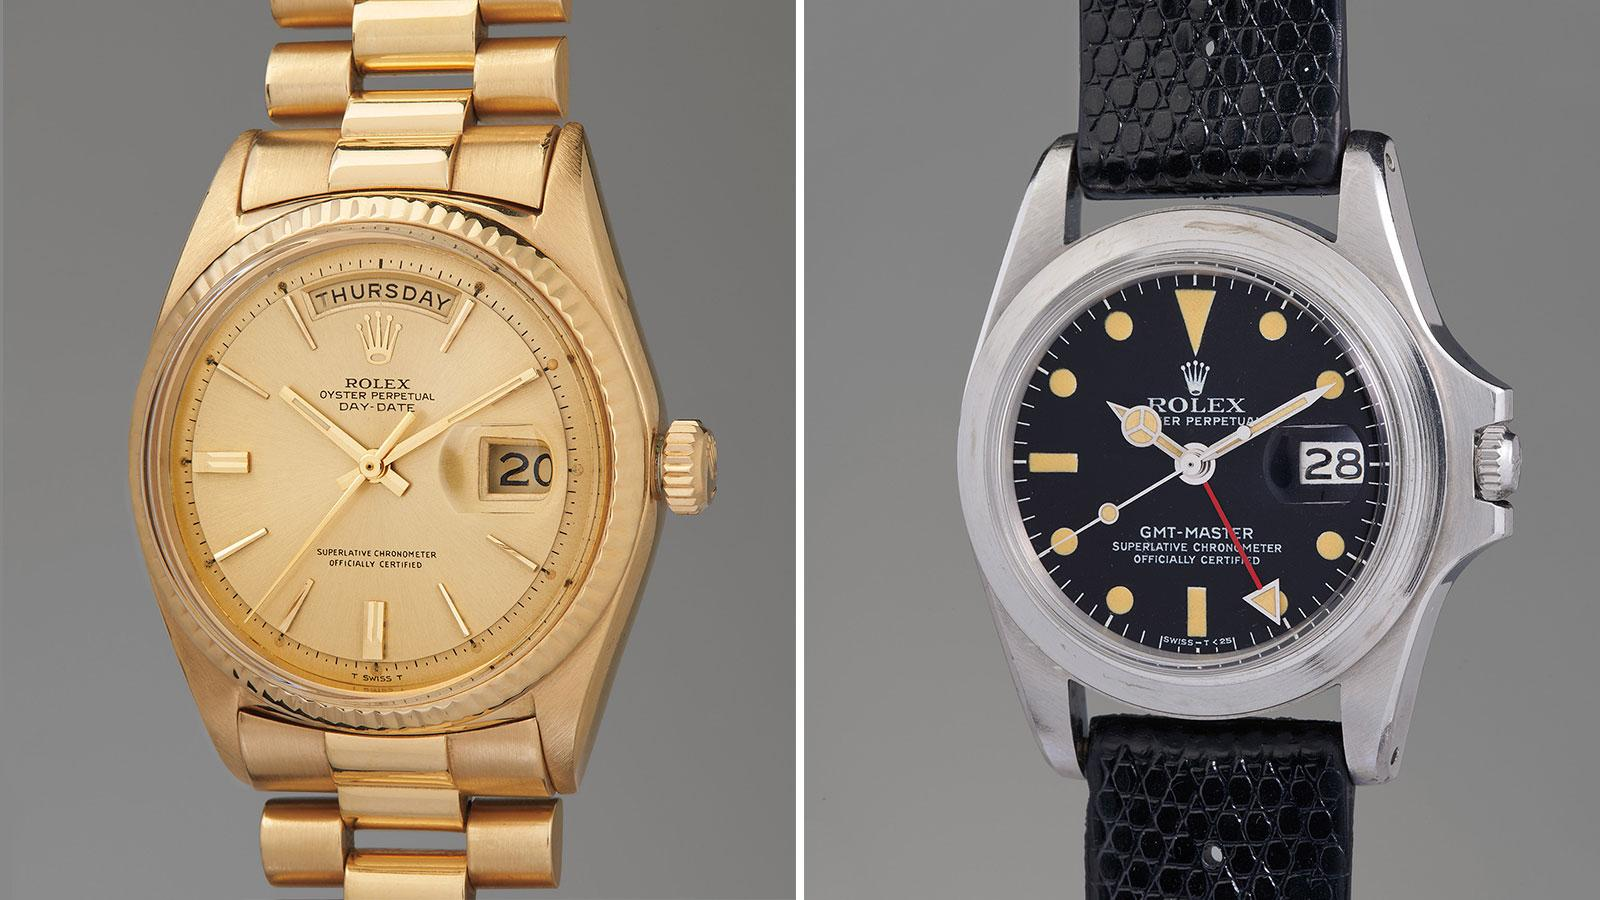 Jack Nicklaus' gold Rolex Day-Date Reference 1803, left, and Marlon Brando's Rolex GMT-Master Reference 1675.